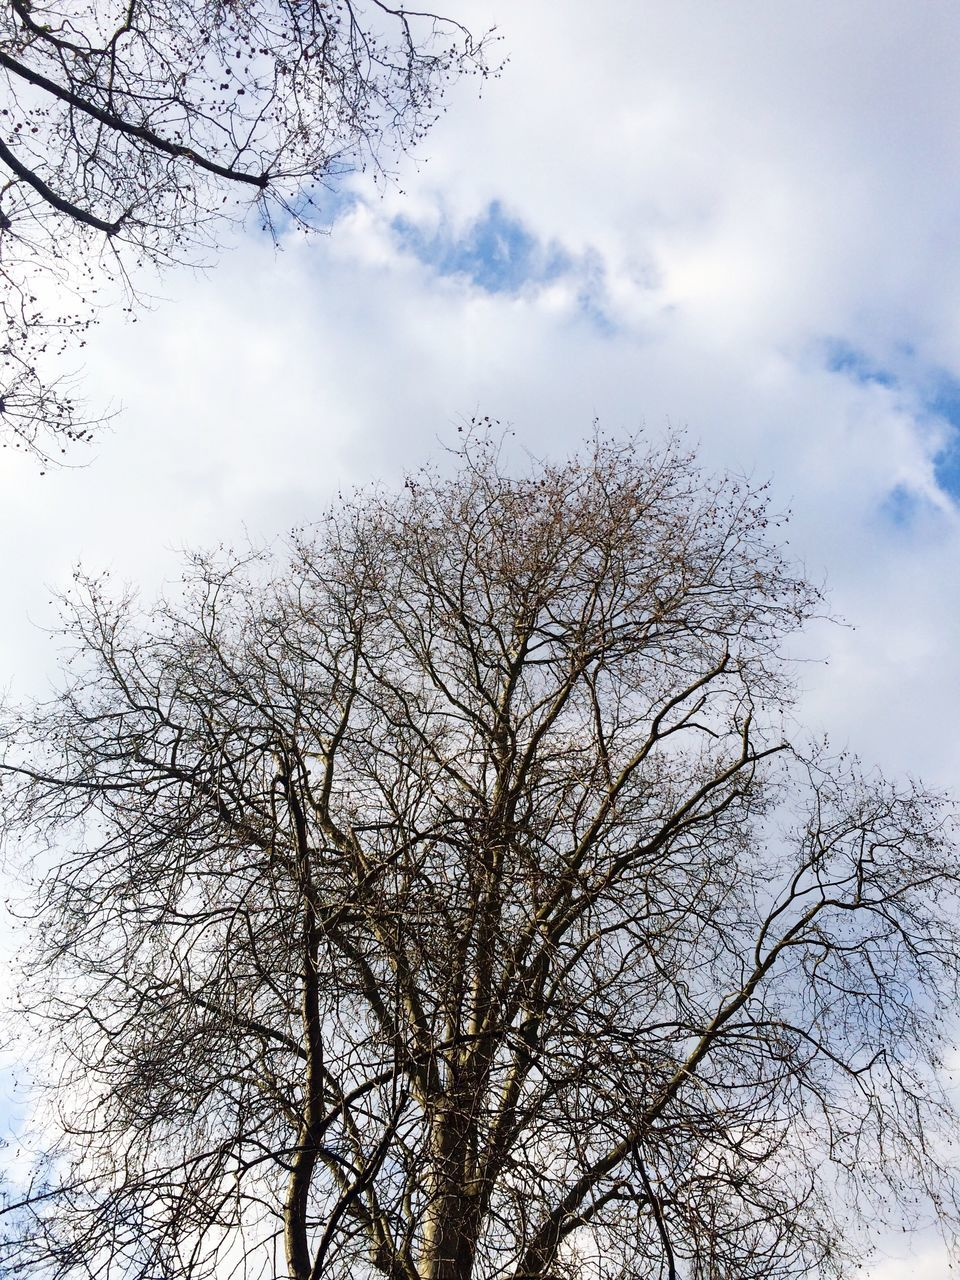 tree, low angle view, sky, branch, nature, bare tree, cloud - sky, no people, beauty in nature, day, outdoors, growth